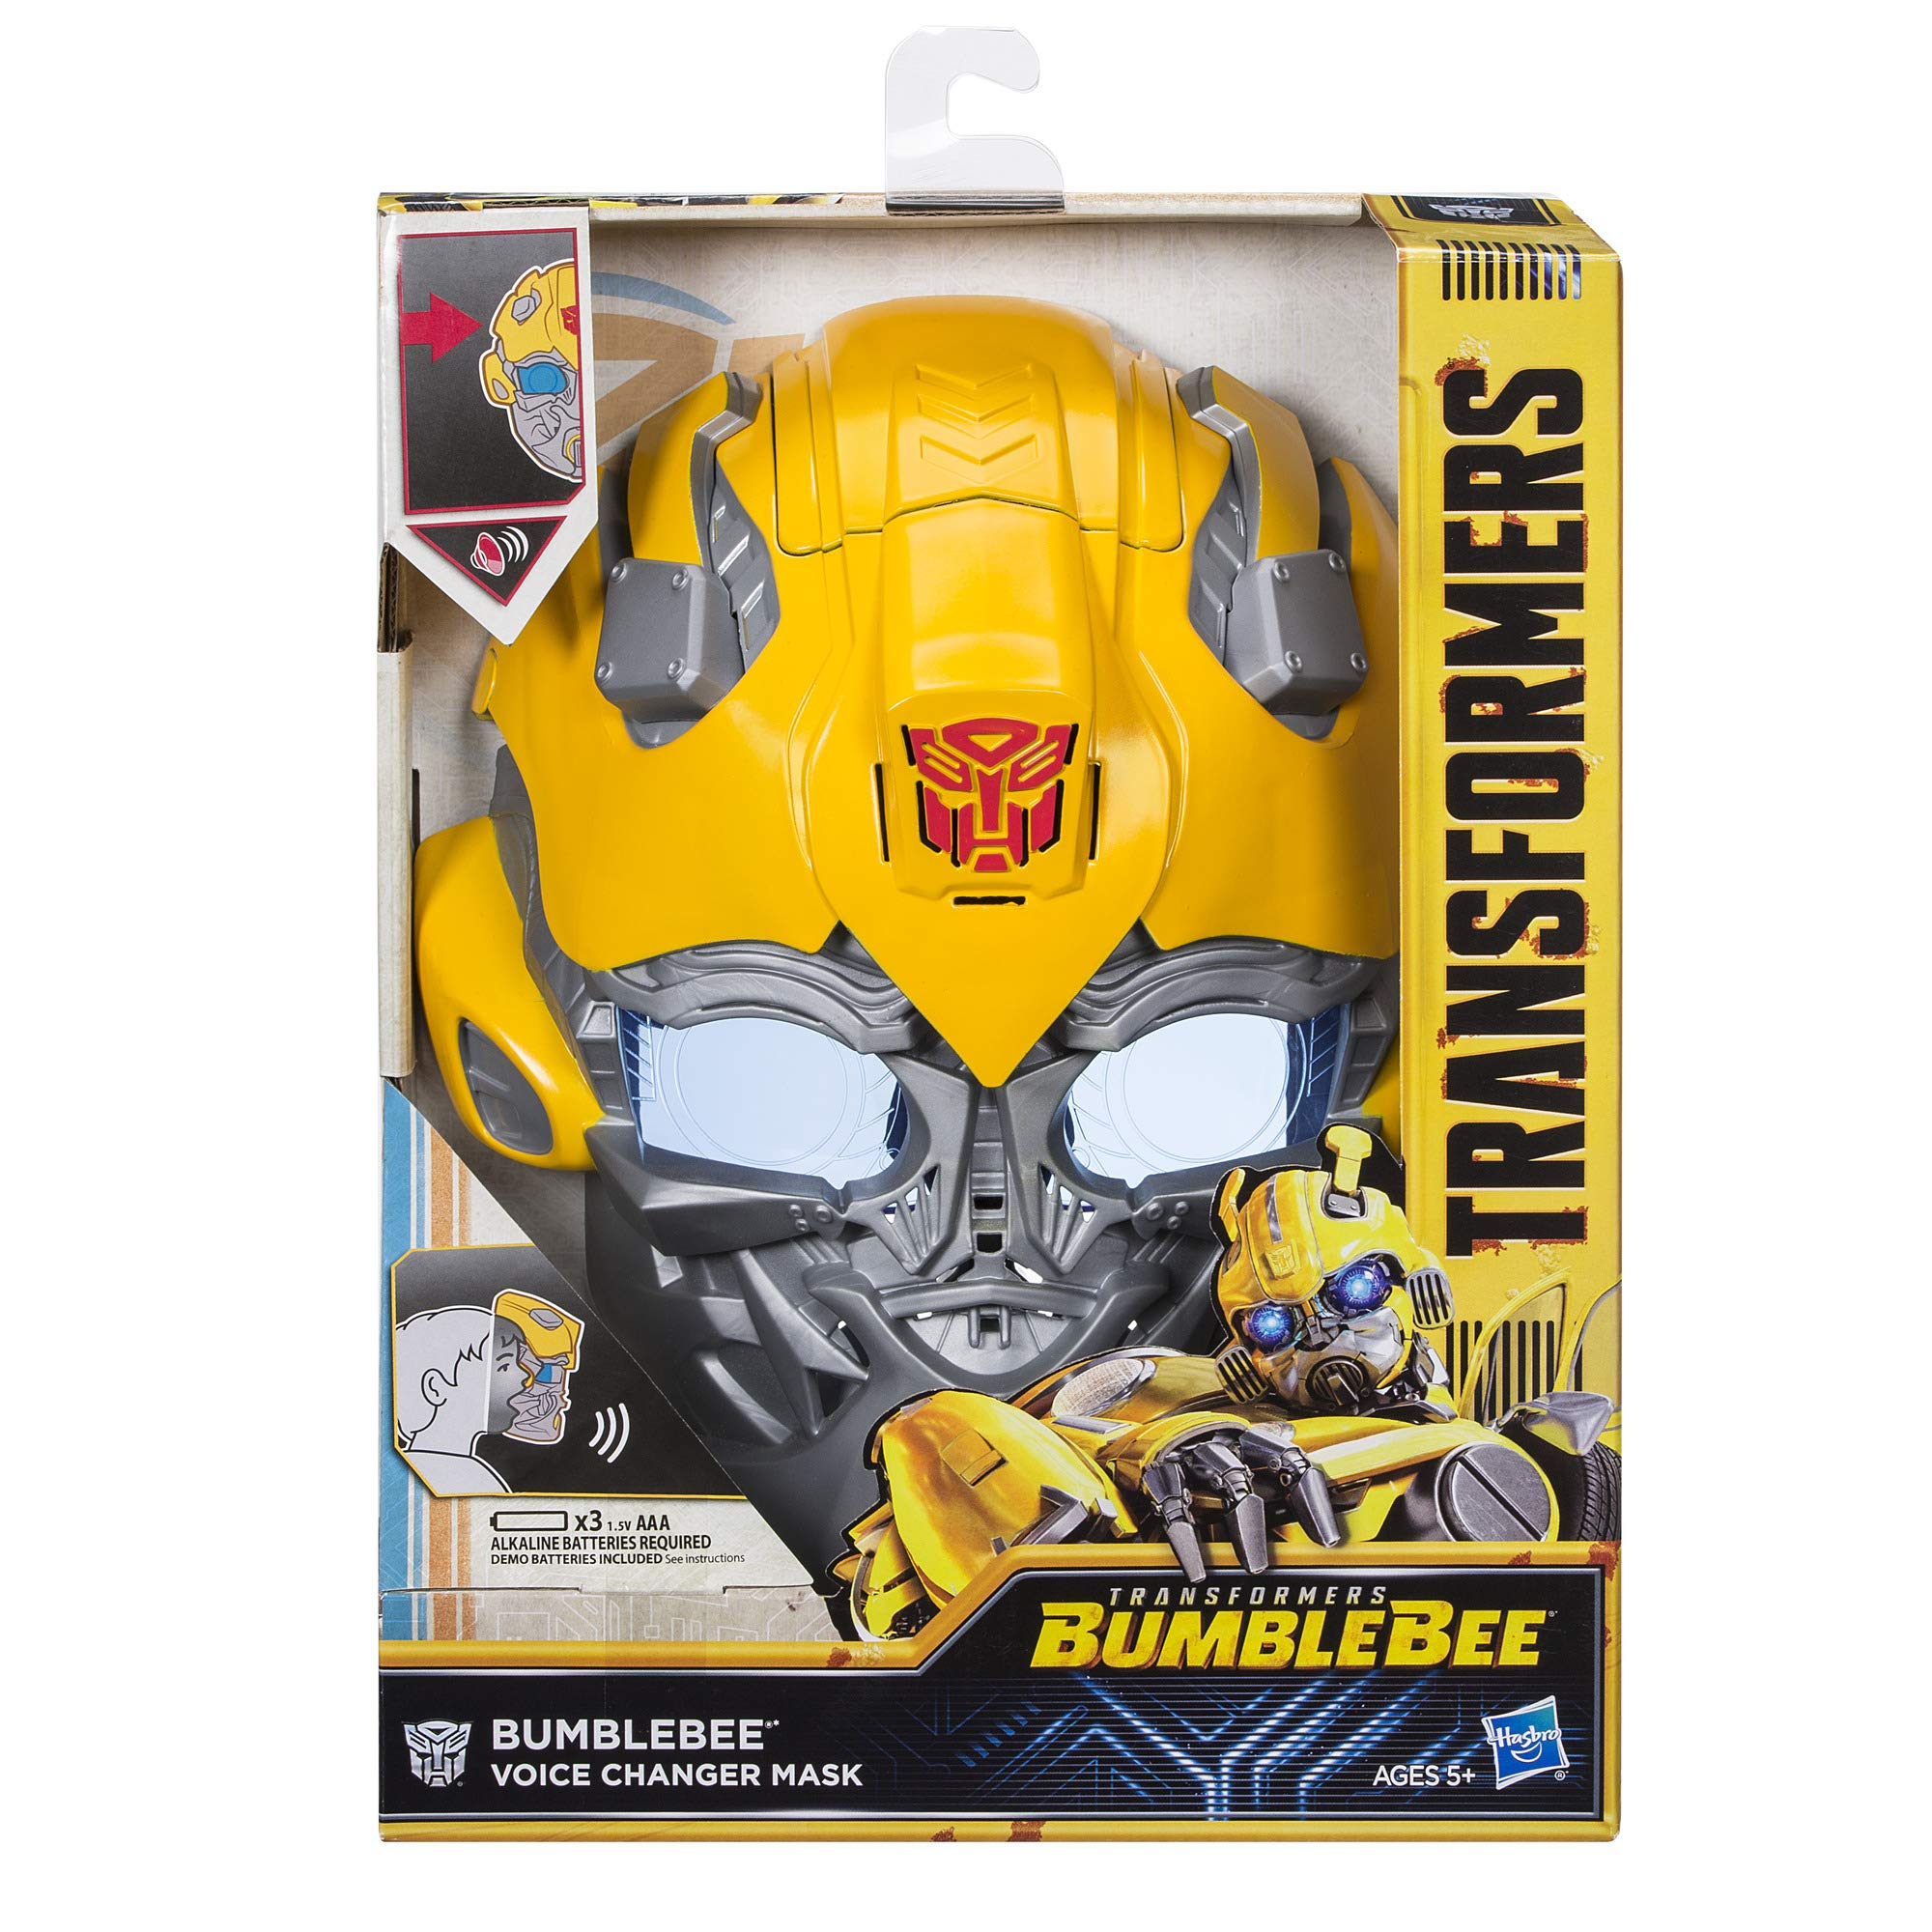 Transformers: Bumblebee -- Bumblebee Voice Changer Mask by Transformers (Image #2)